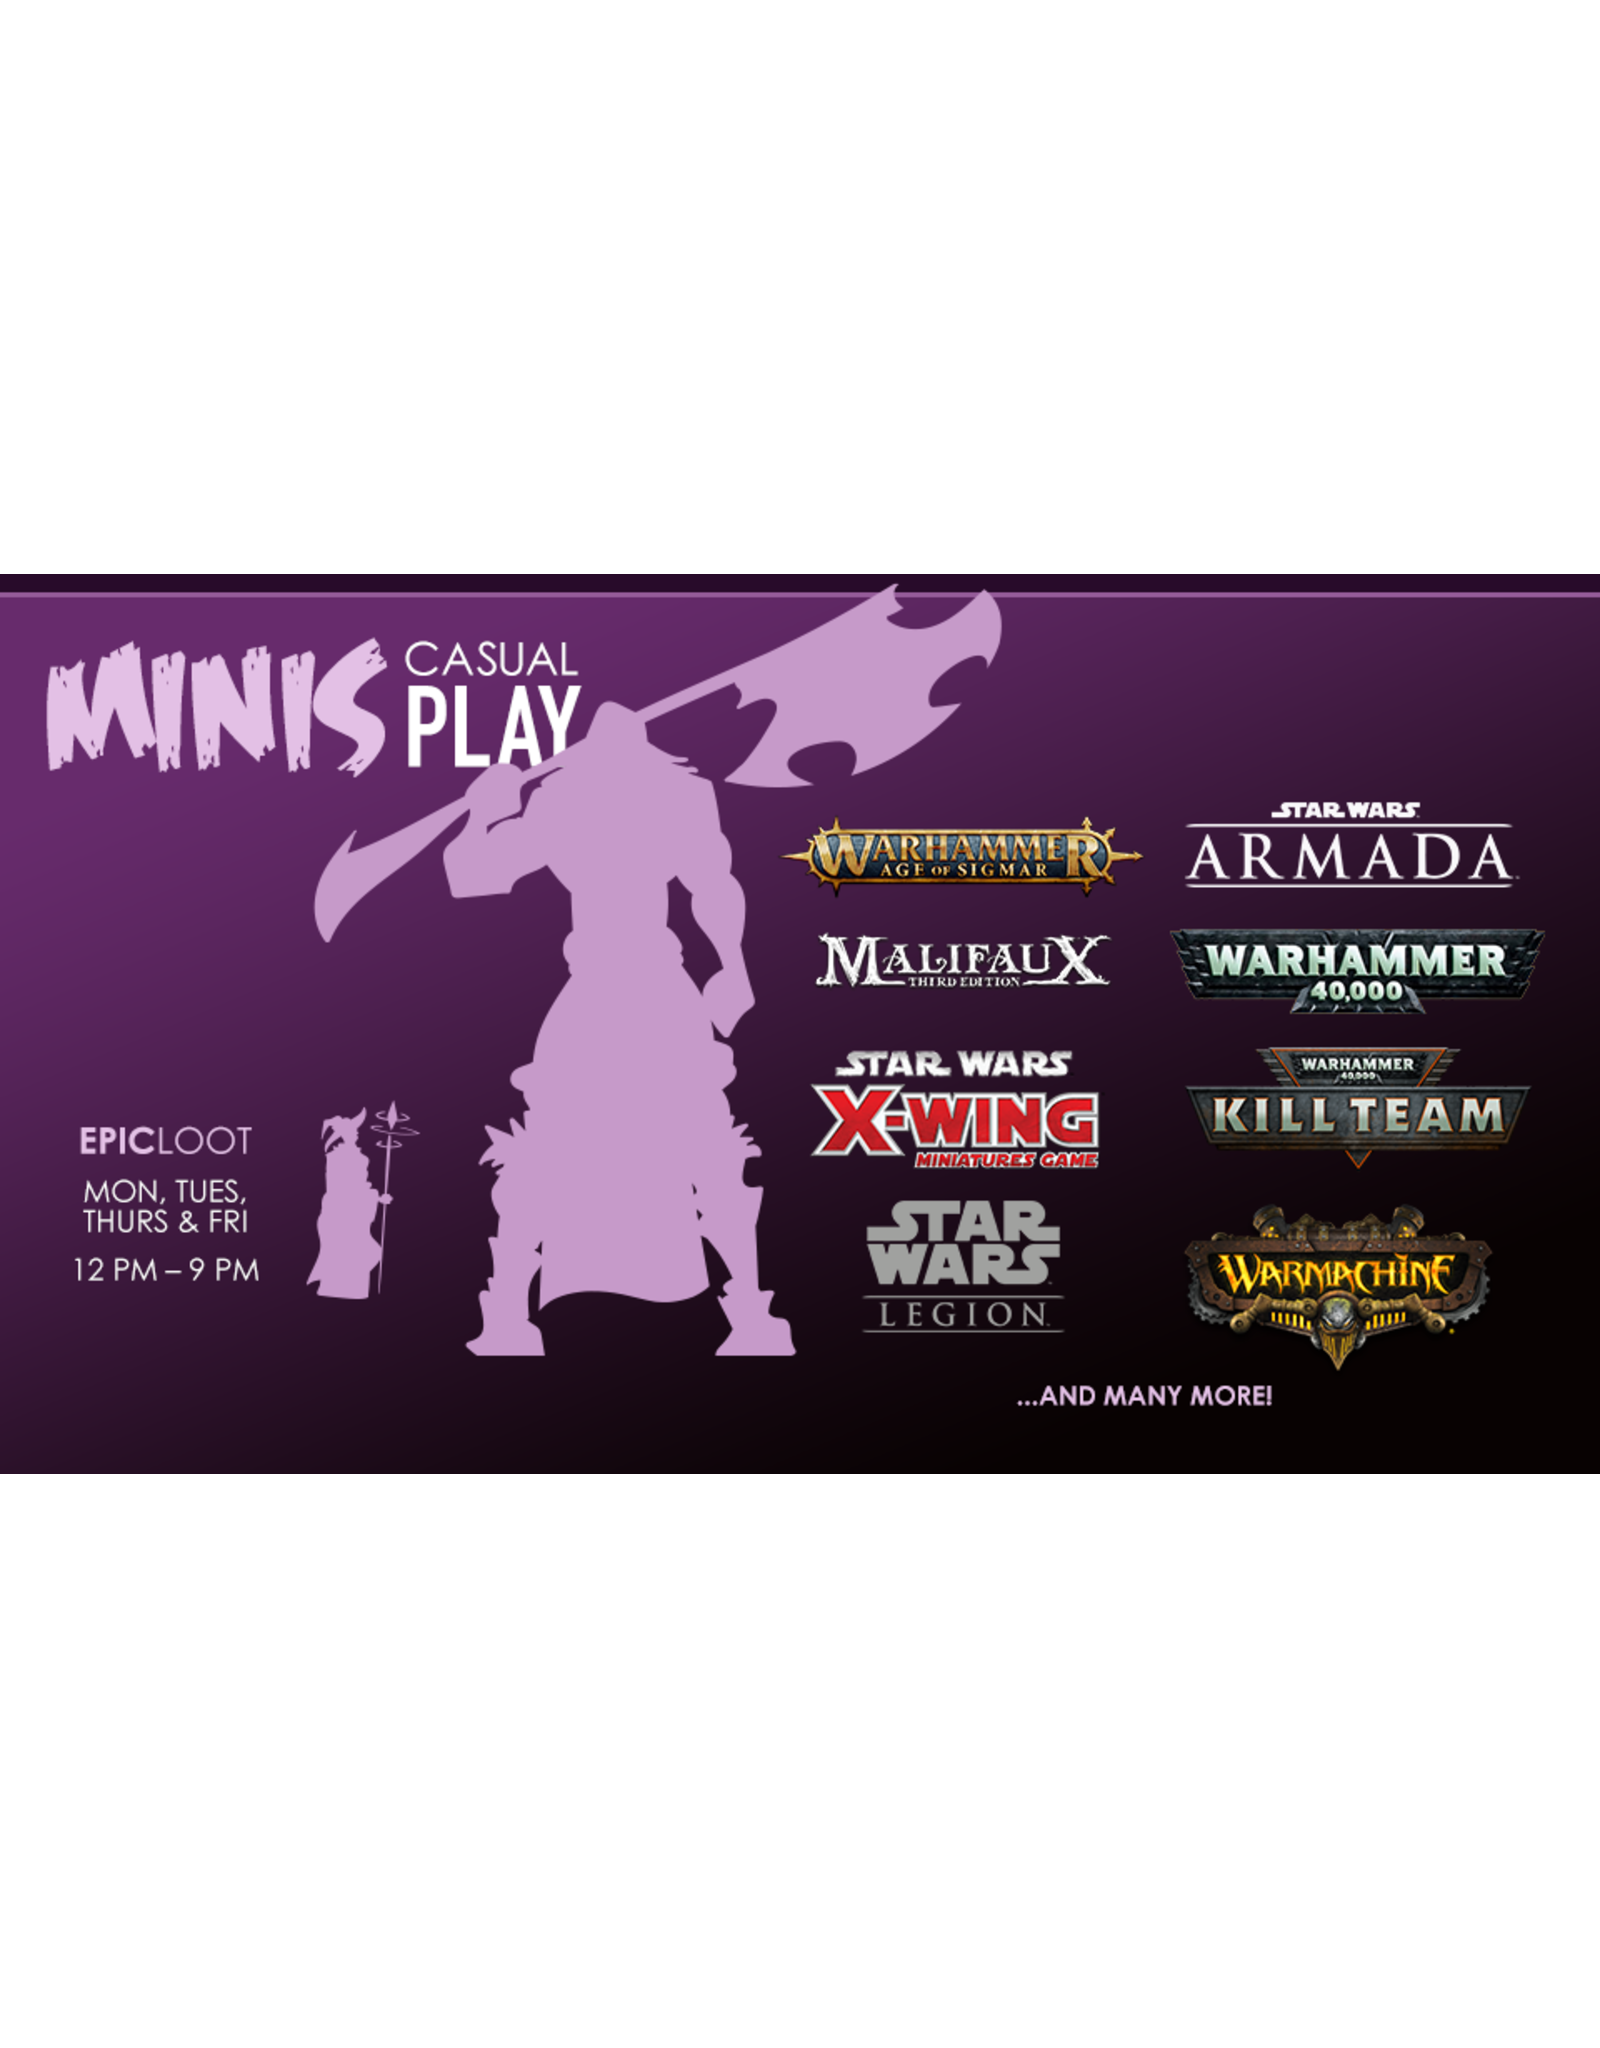 Minis Casual Play - Mon 10/11 12-9PM